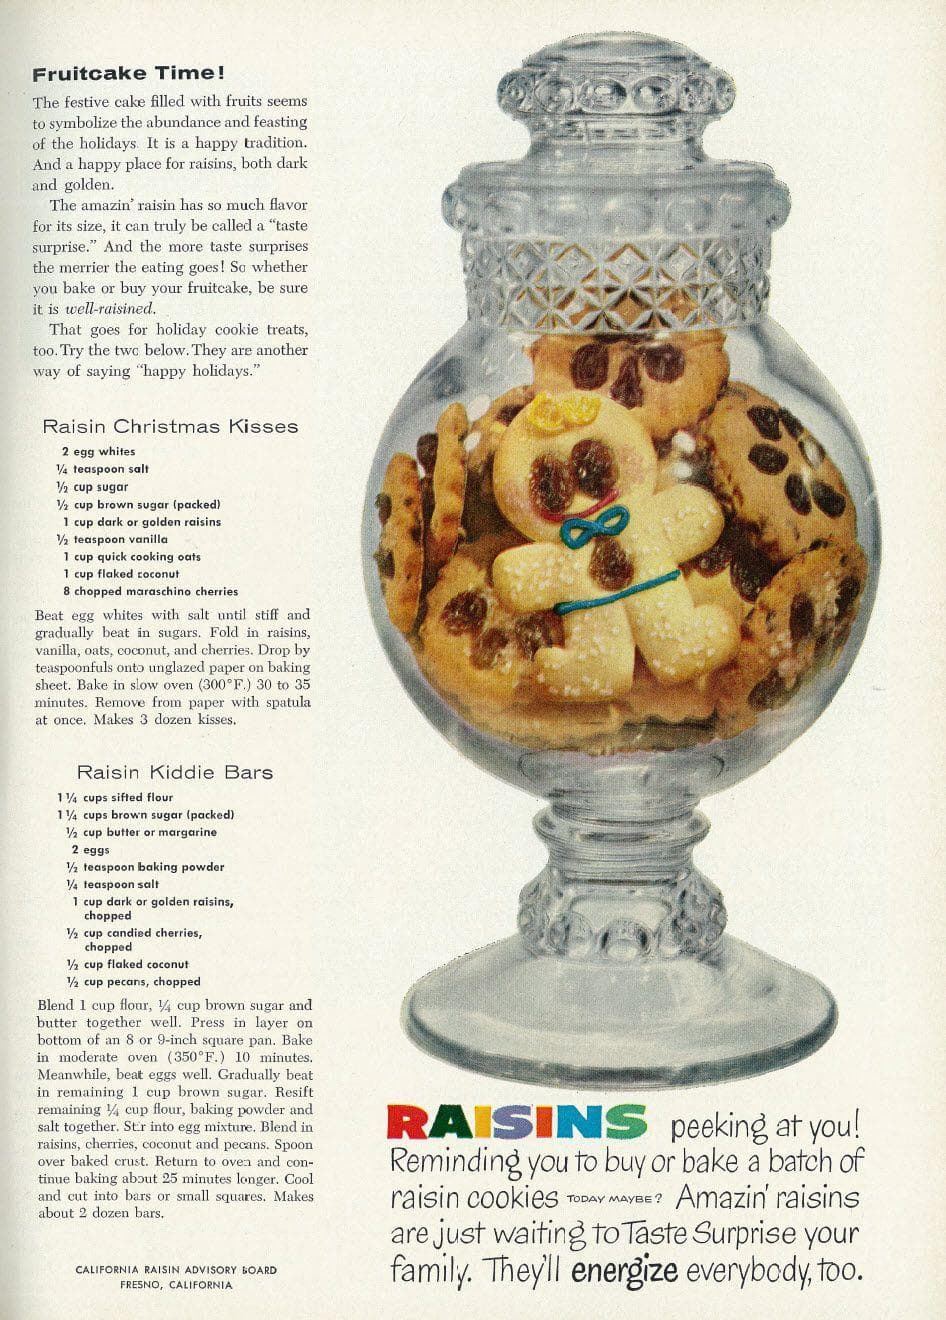 Raisin Kiddie Bars on Random Weird Vintage Foods You'd Love At Your Holiday Party